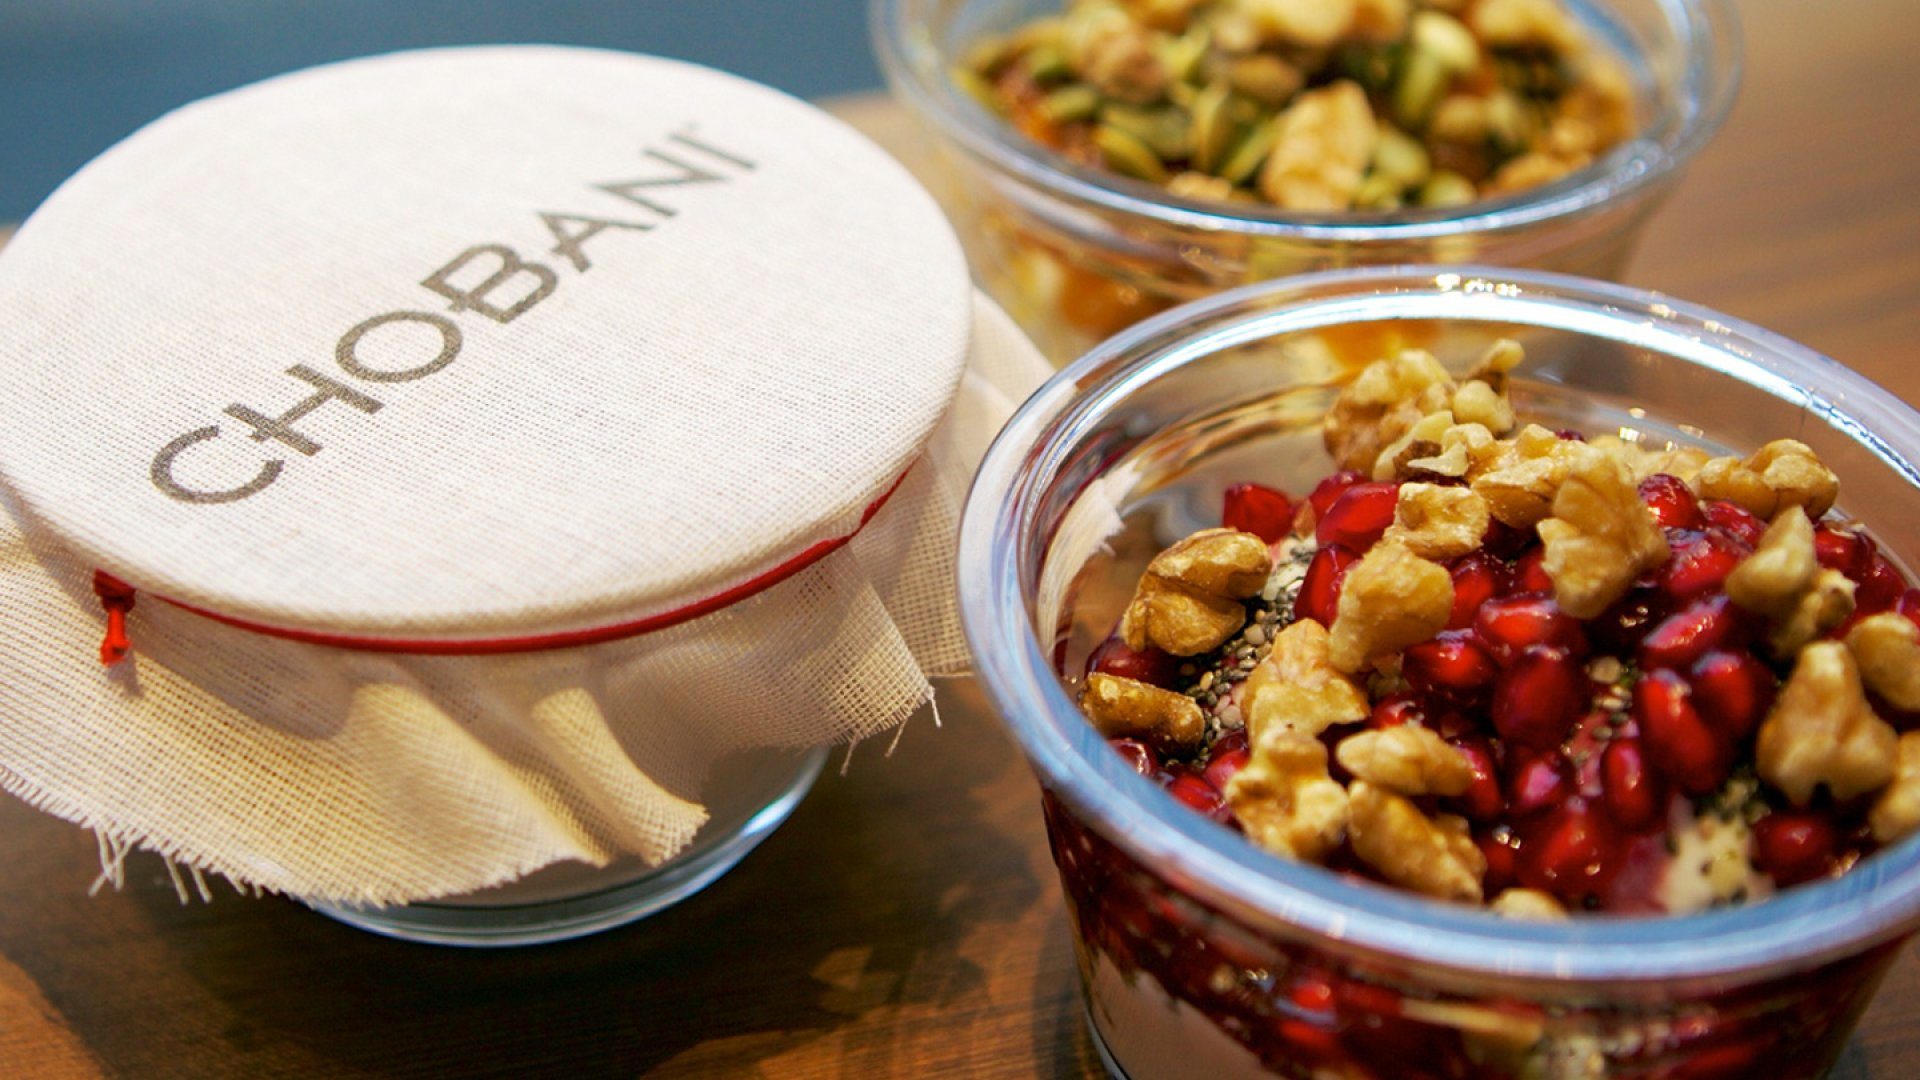 5 Reasons Chobani Rules | Company of the Year Runner-Up